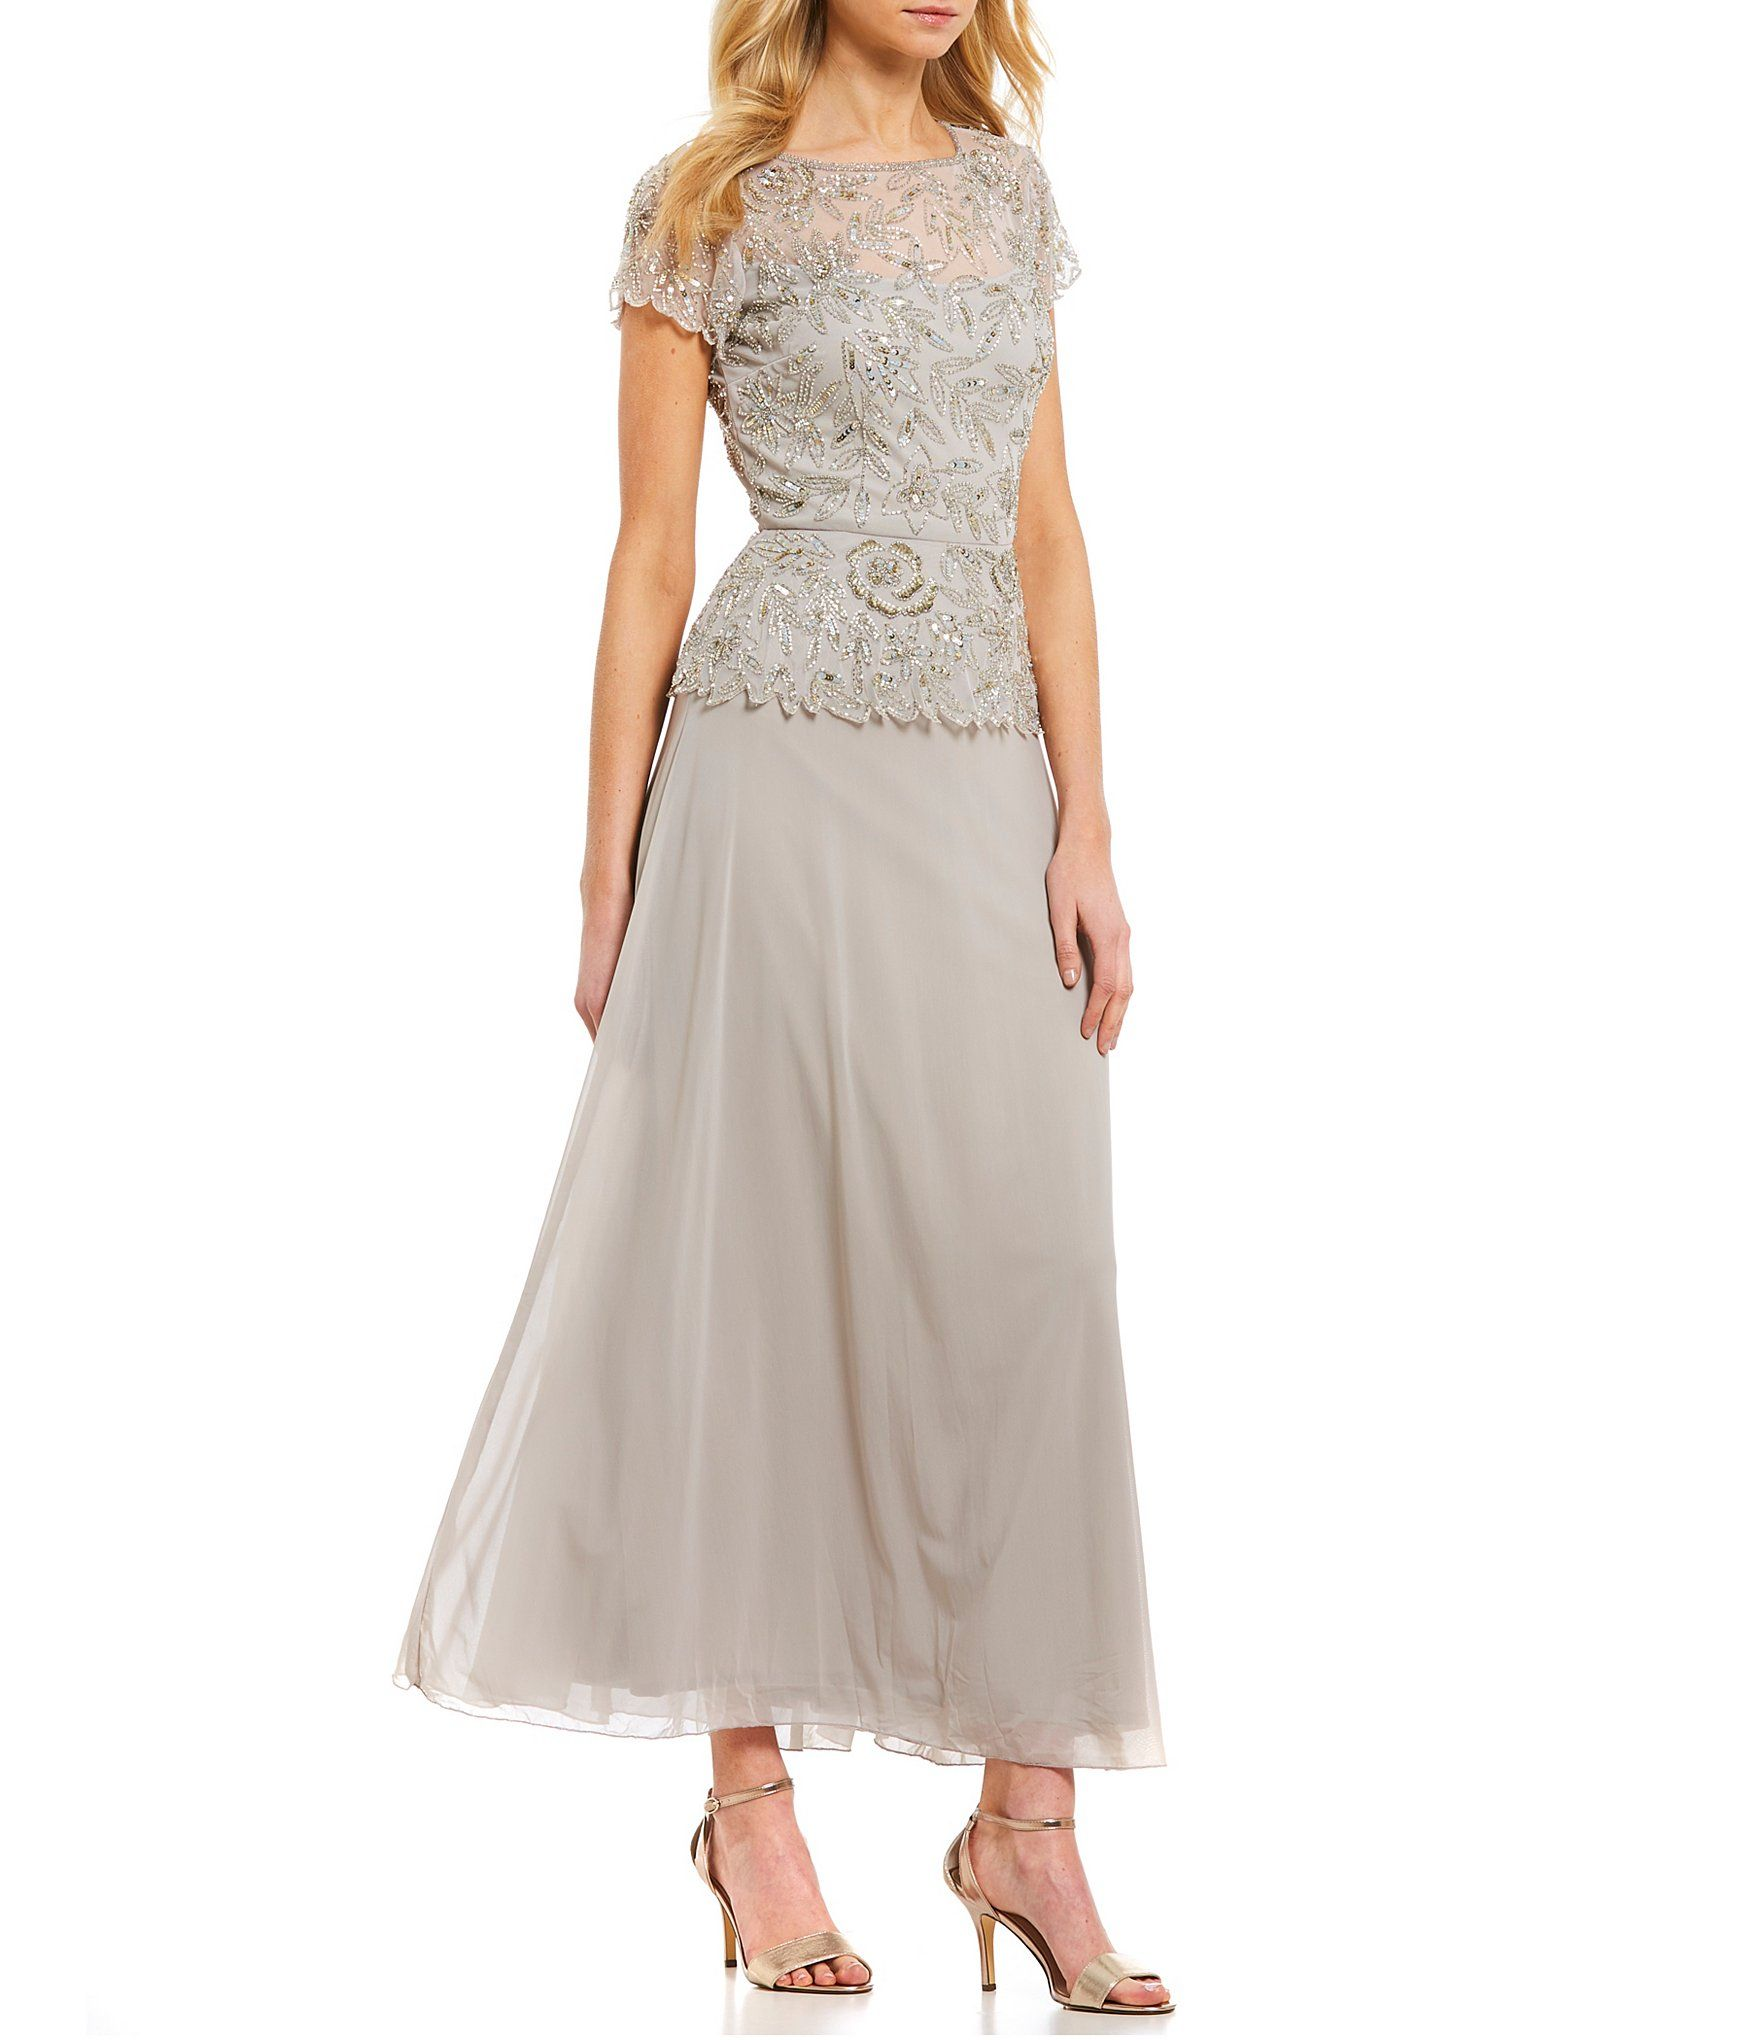 Pisarro Nights Short Sleeve Beaded Bodice Chiffon Gown Dillards Mother Of The Bride Dresses Gowns Groom Dress